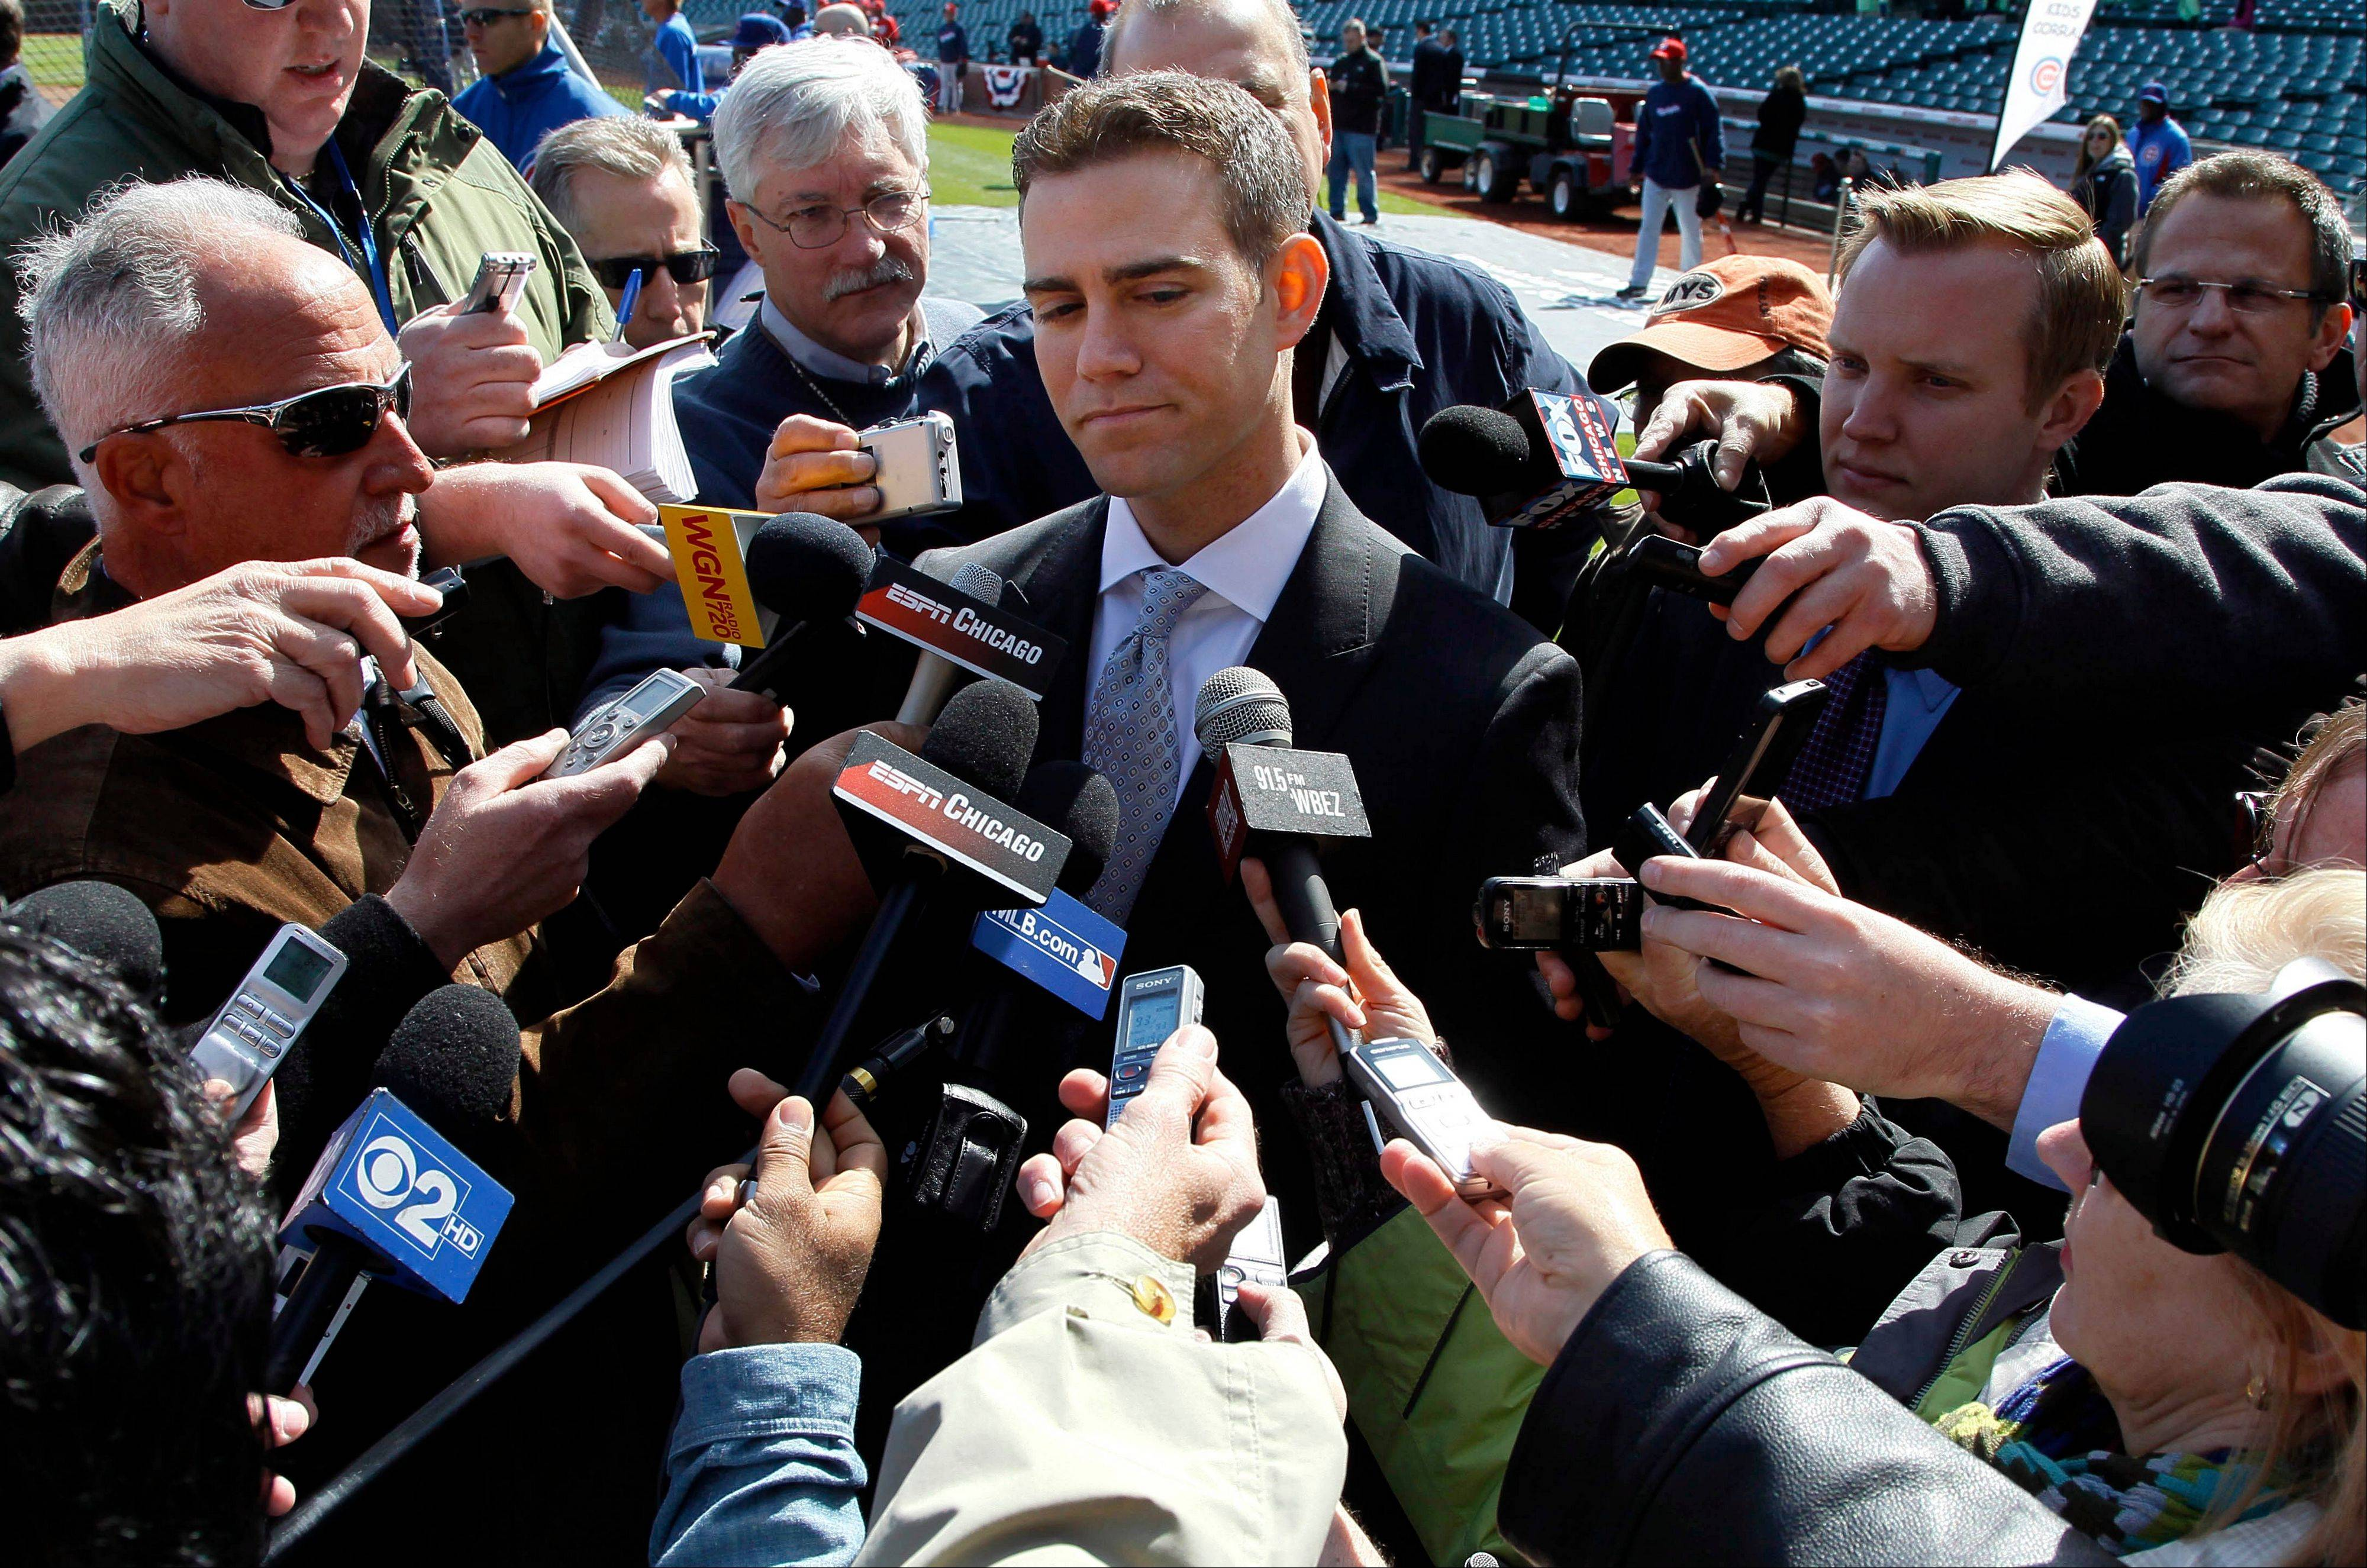 For now, media interviews with managerial prospects won't be part of the search process, according to Cubs president Theo